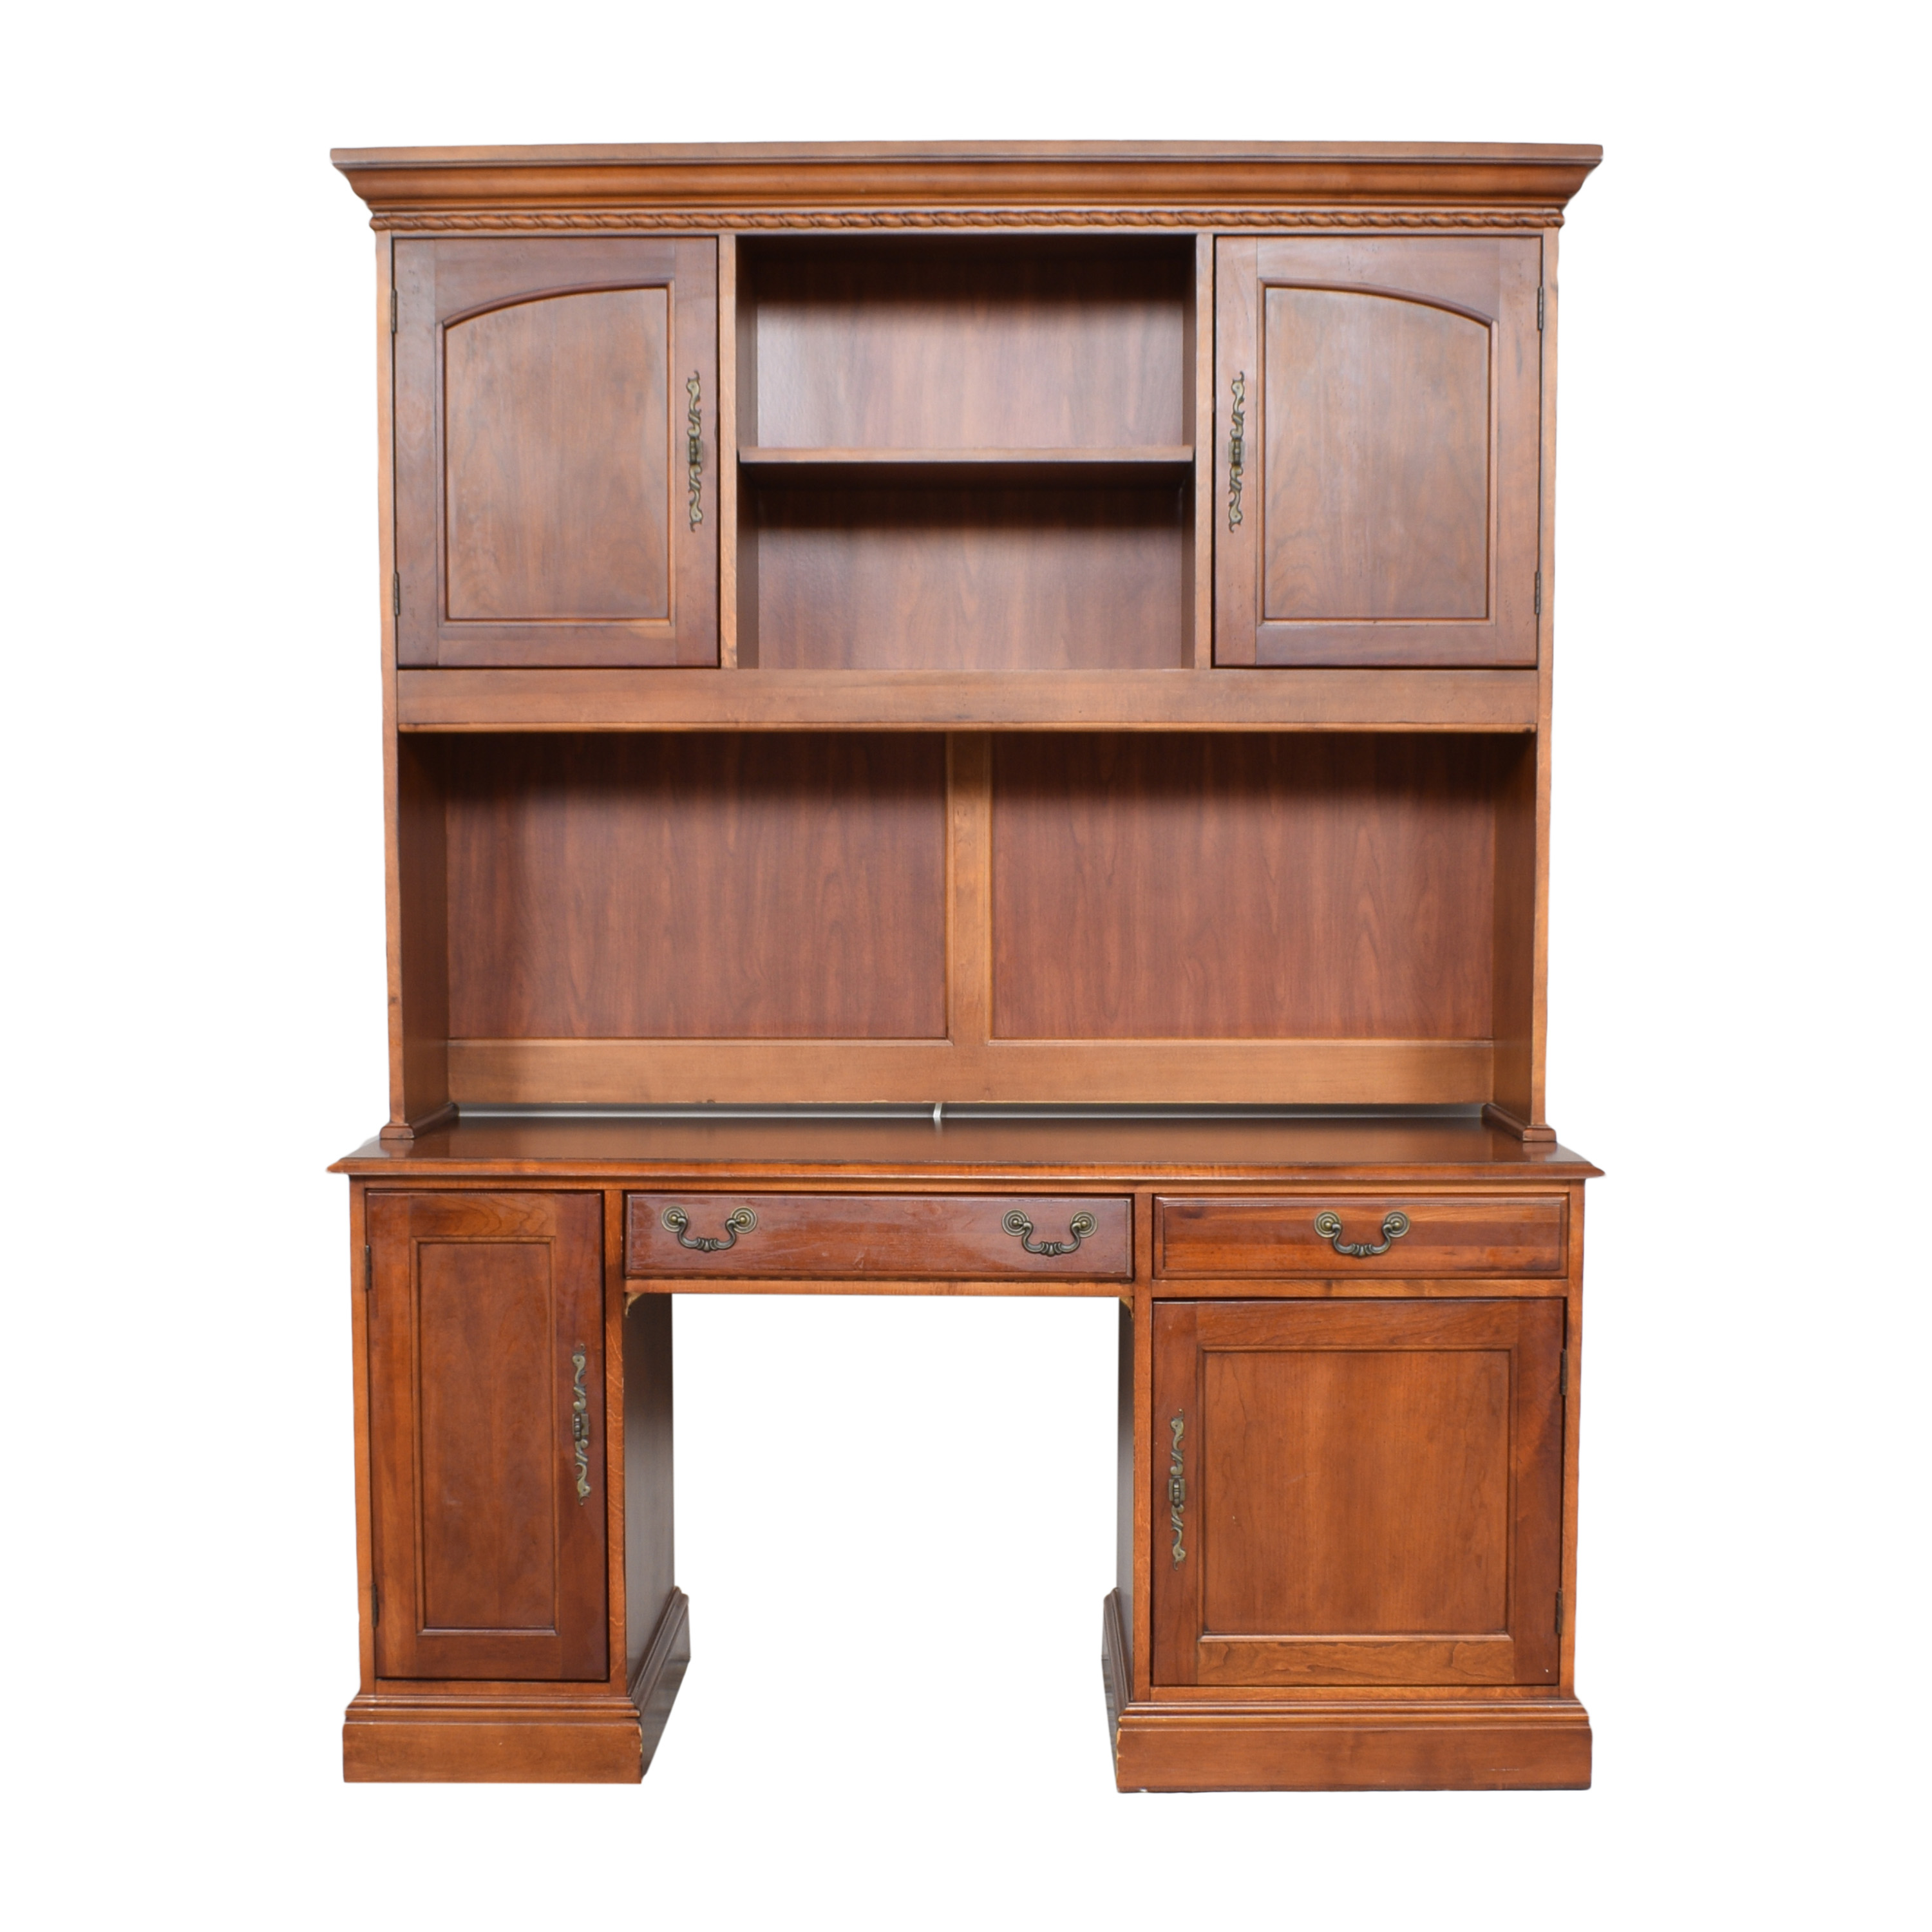 Hooker Furniture Hooker Furniture Computer Credenza Hutch Desk Tables